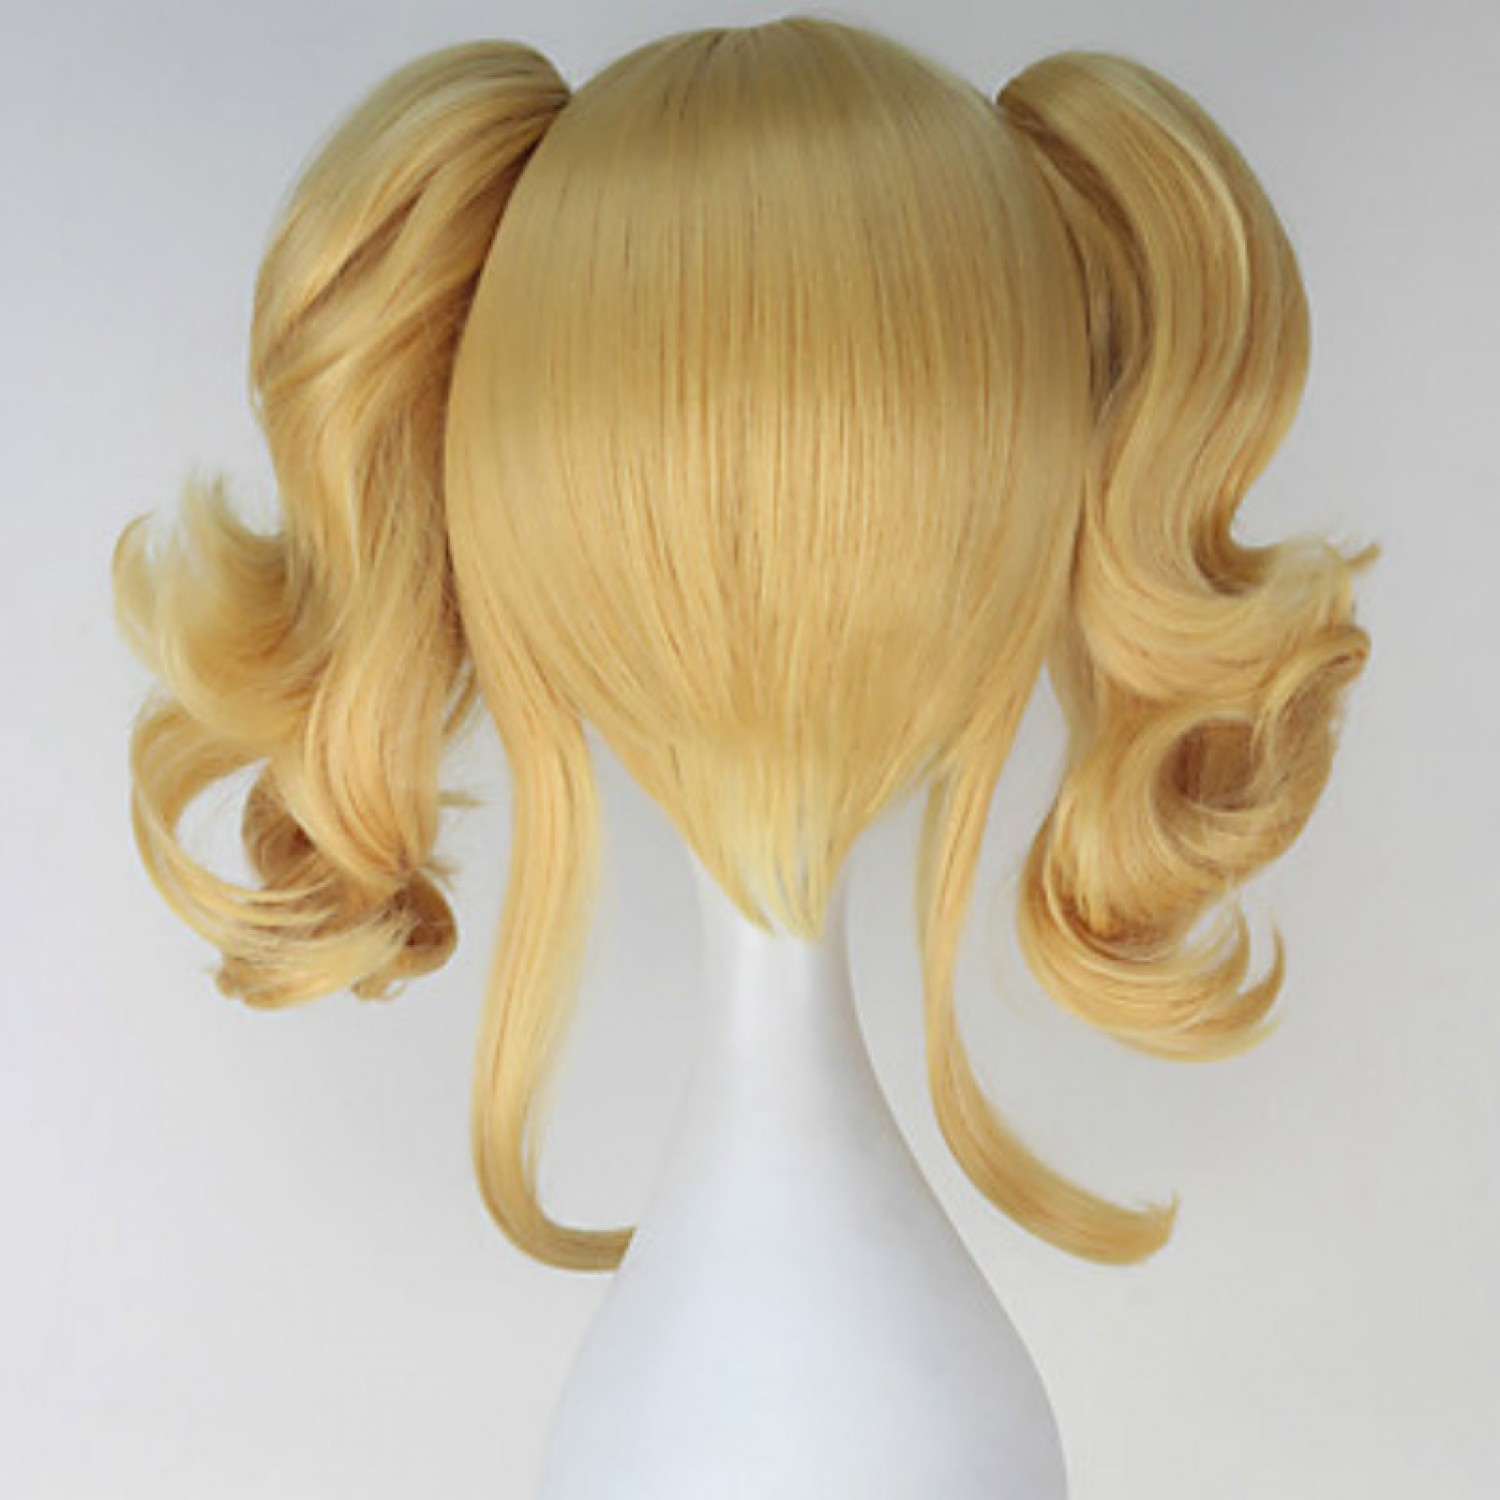 Kantai Collection Other Anime Cosplay Wigs